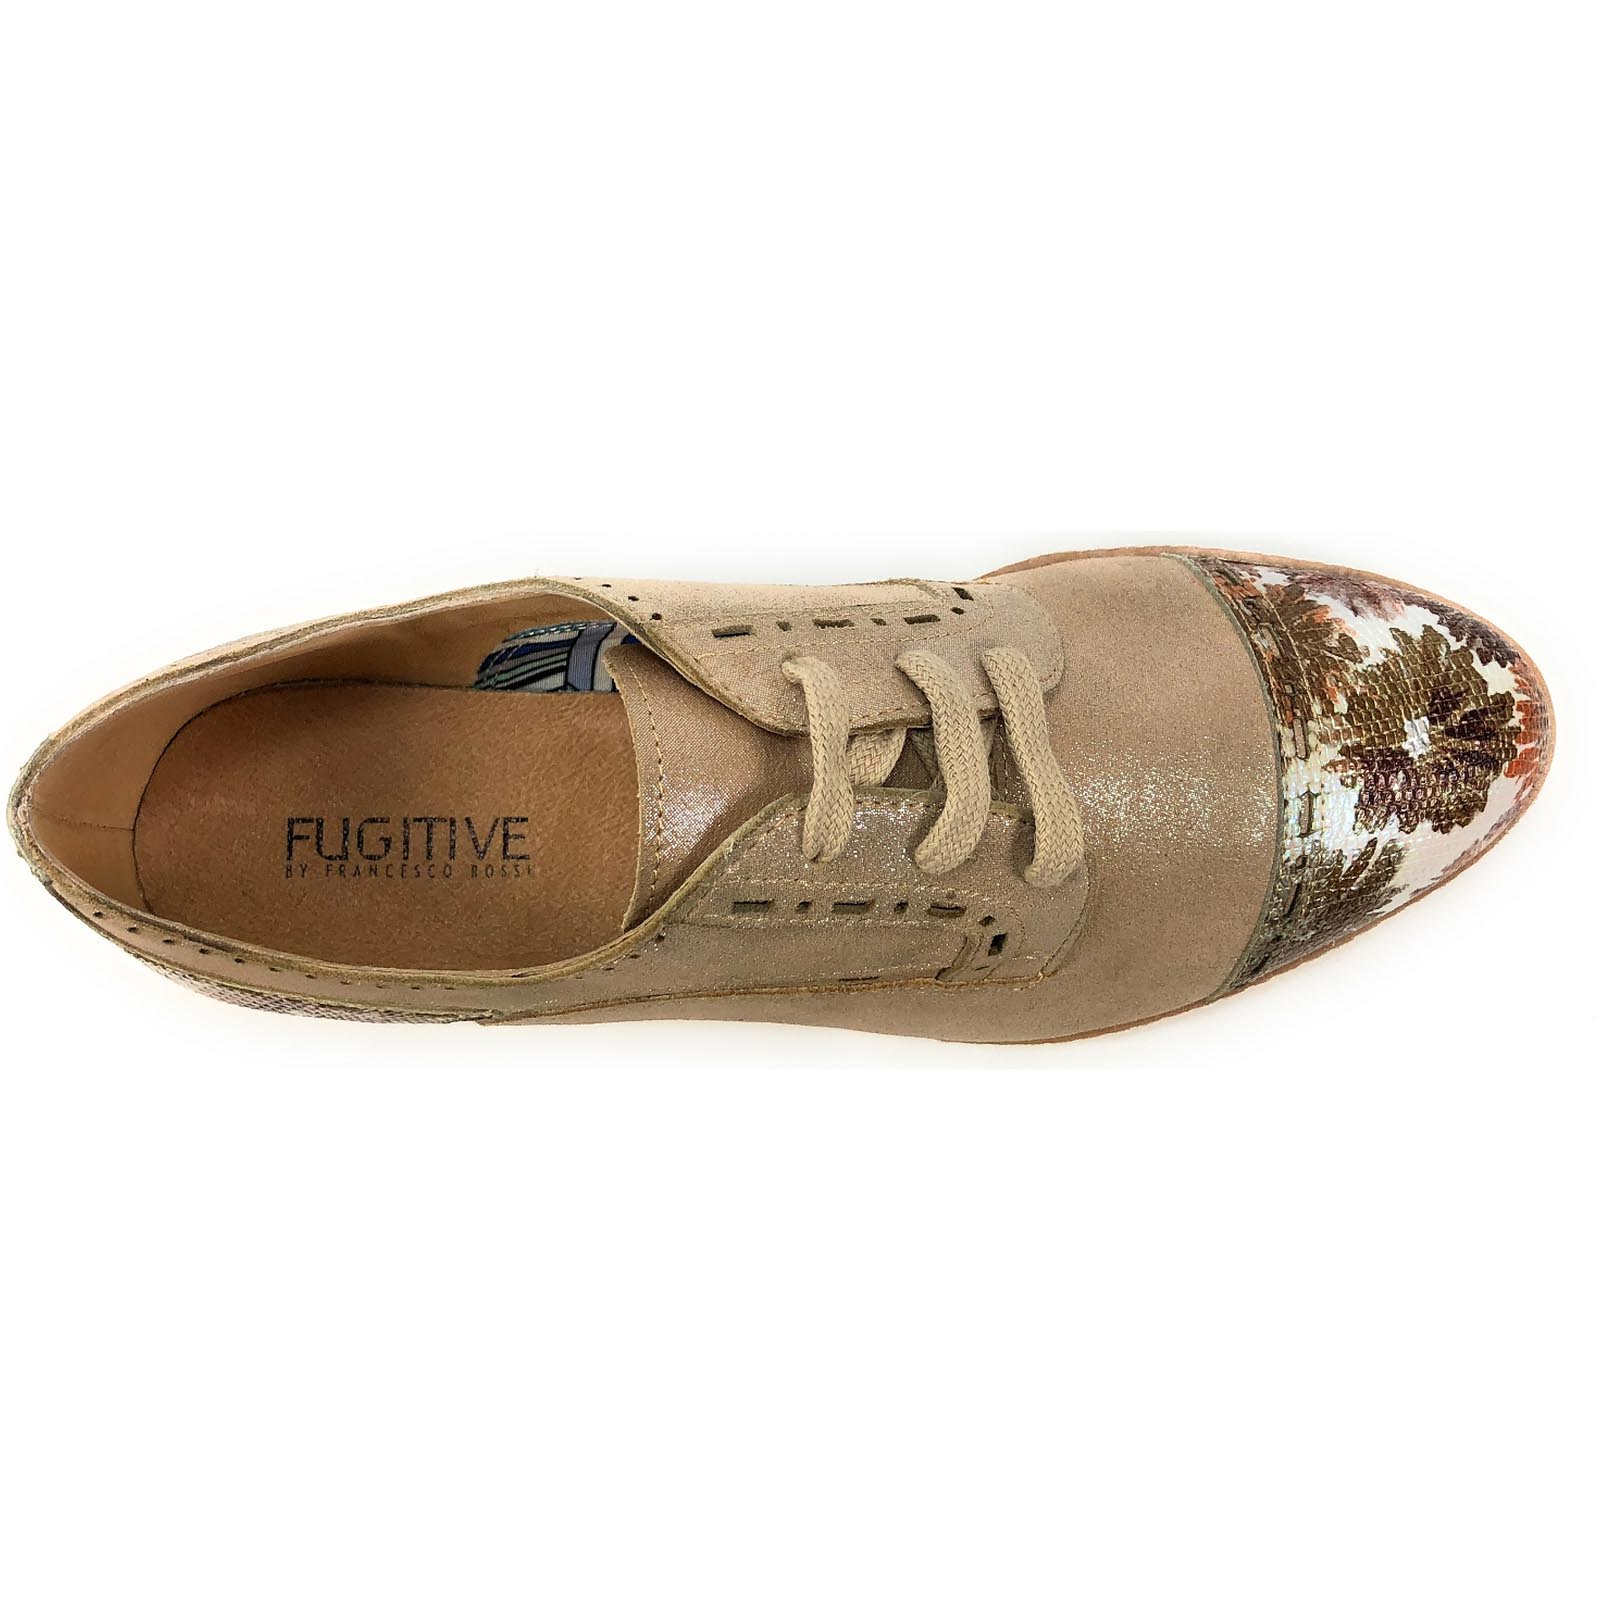 Fugitive chaussures ville lacets willer rose8003802_5